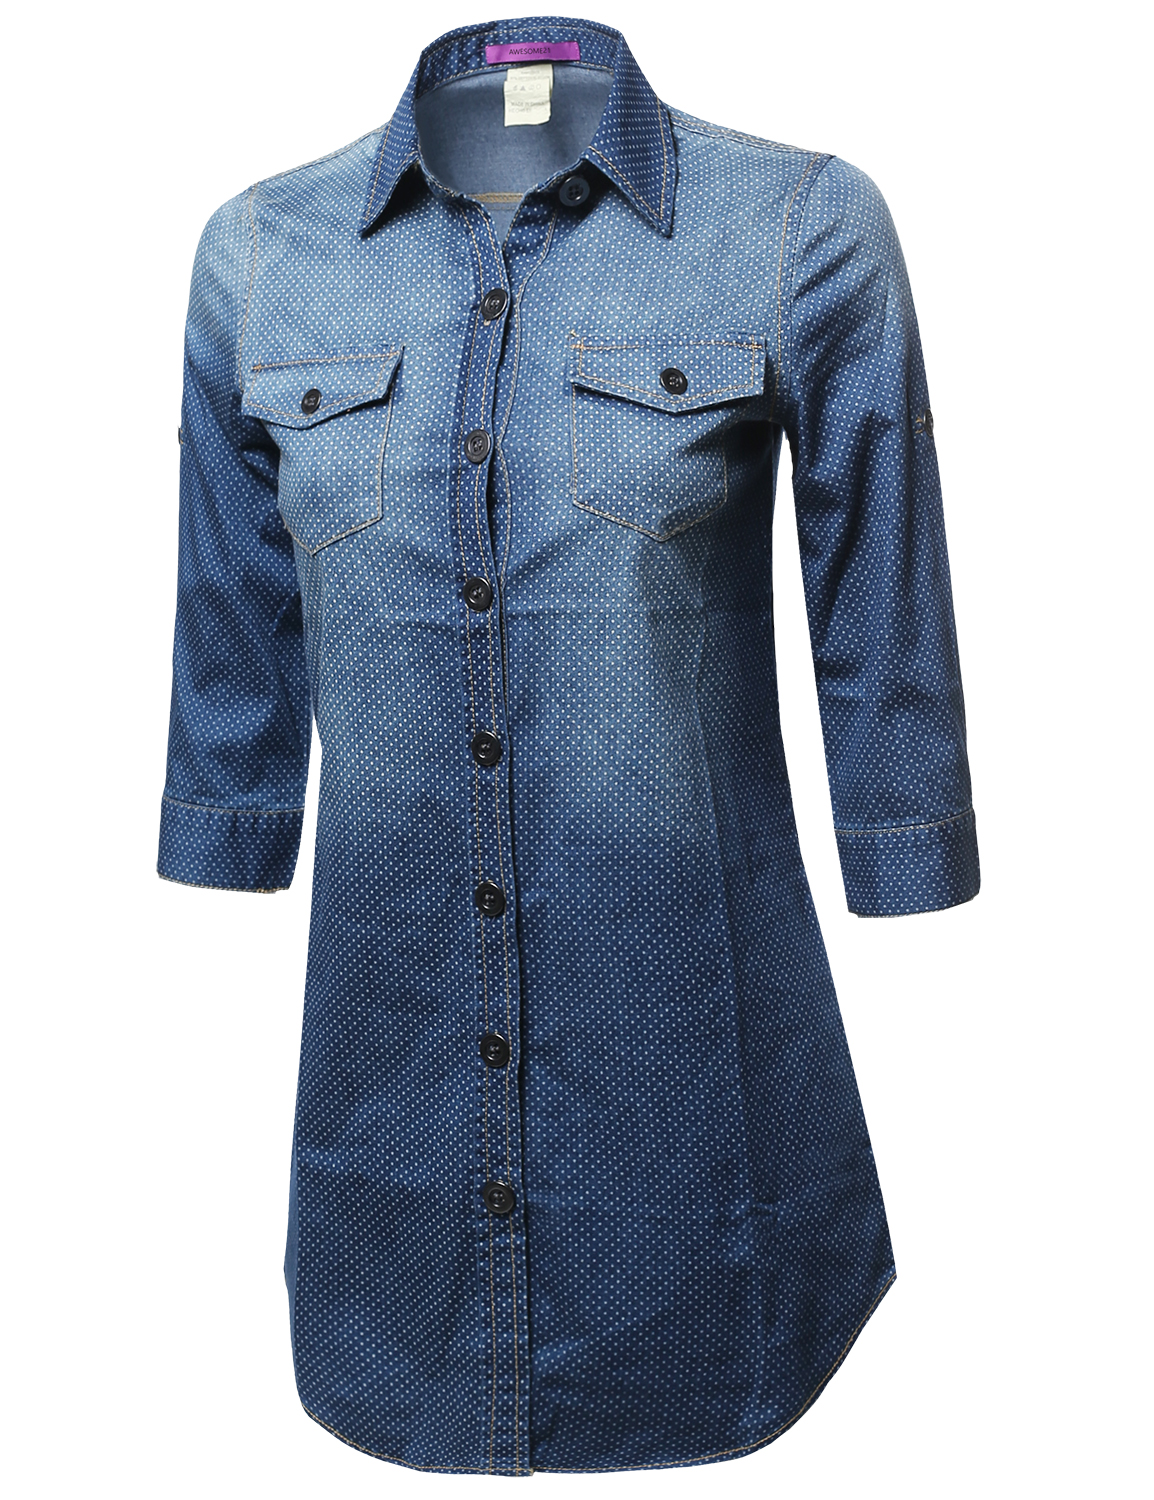 Fashionoutfit women 39 s denim chambray 3 4 sleeve button for Chambray shirt women